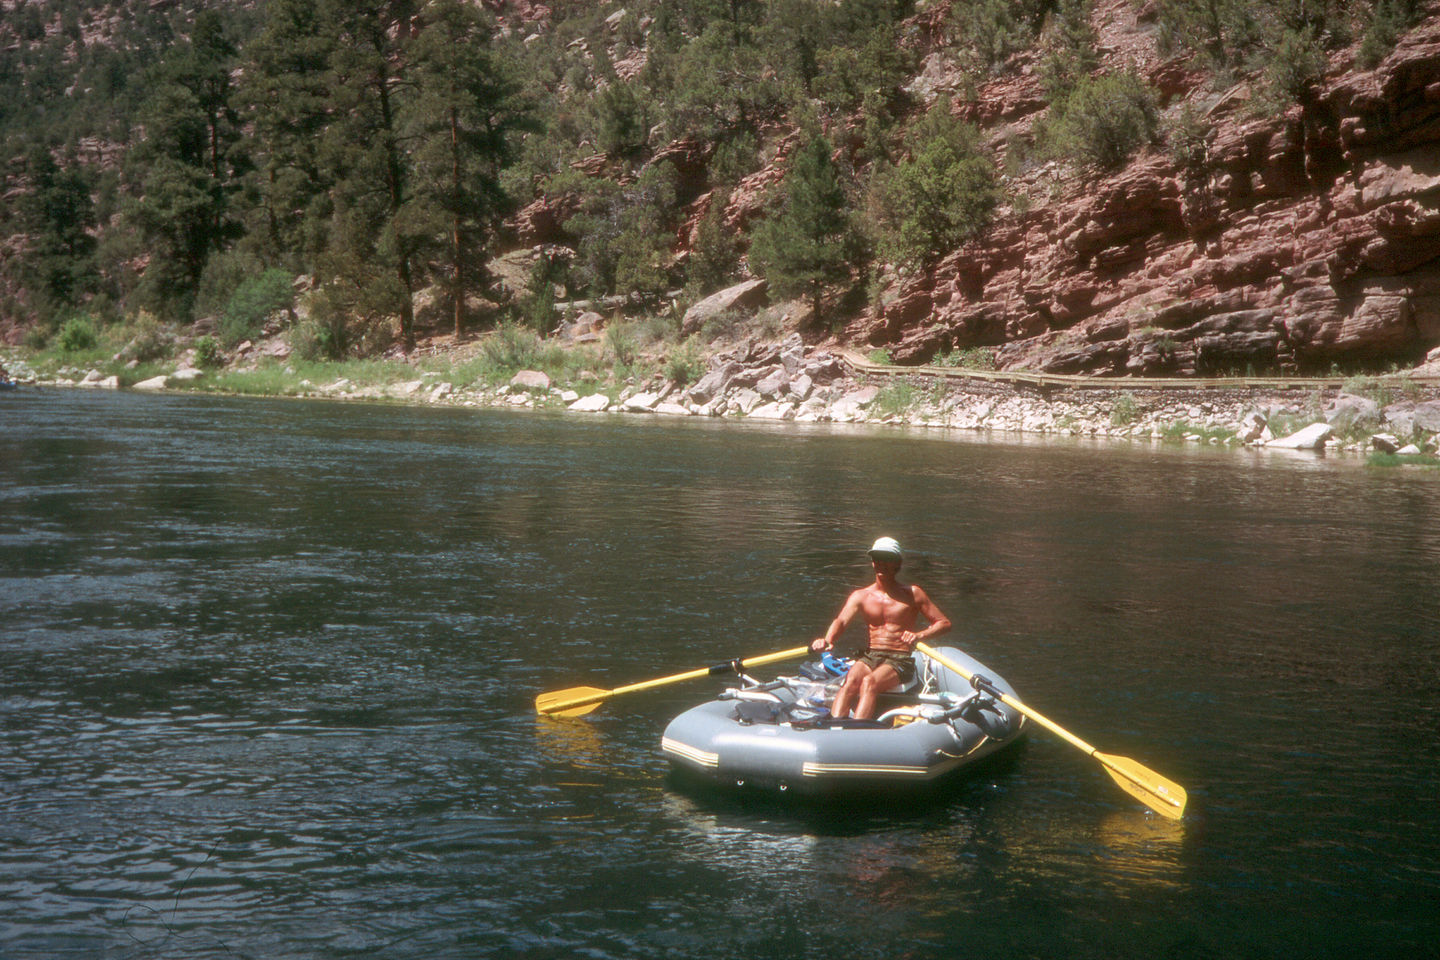 Herb and his trusty rubber boat